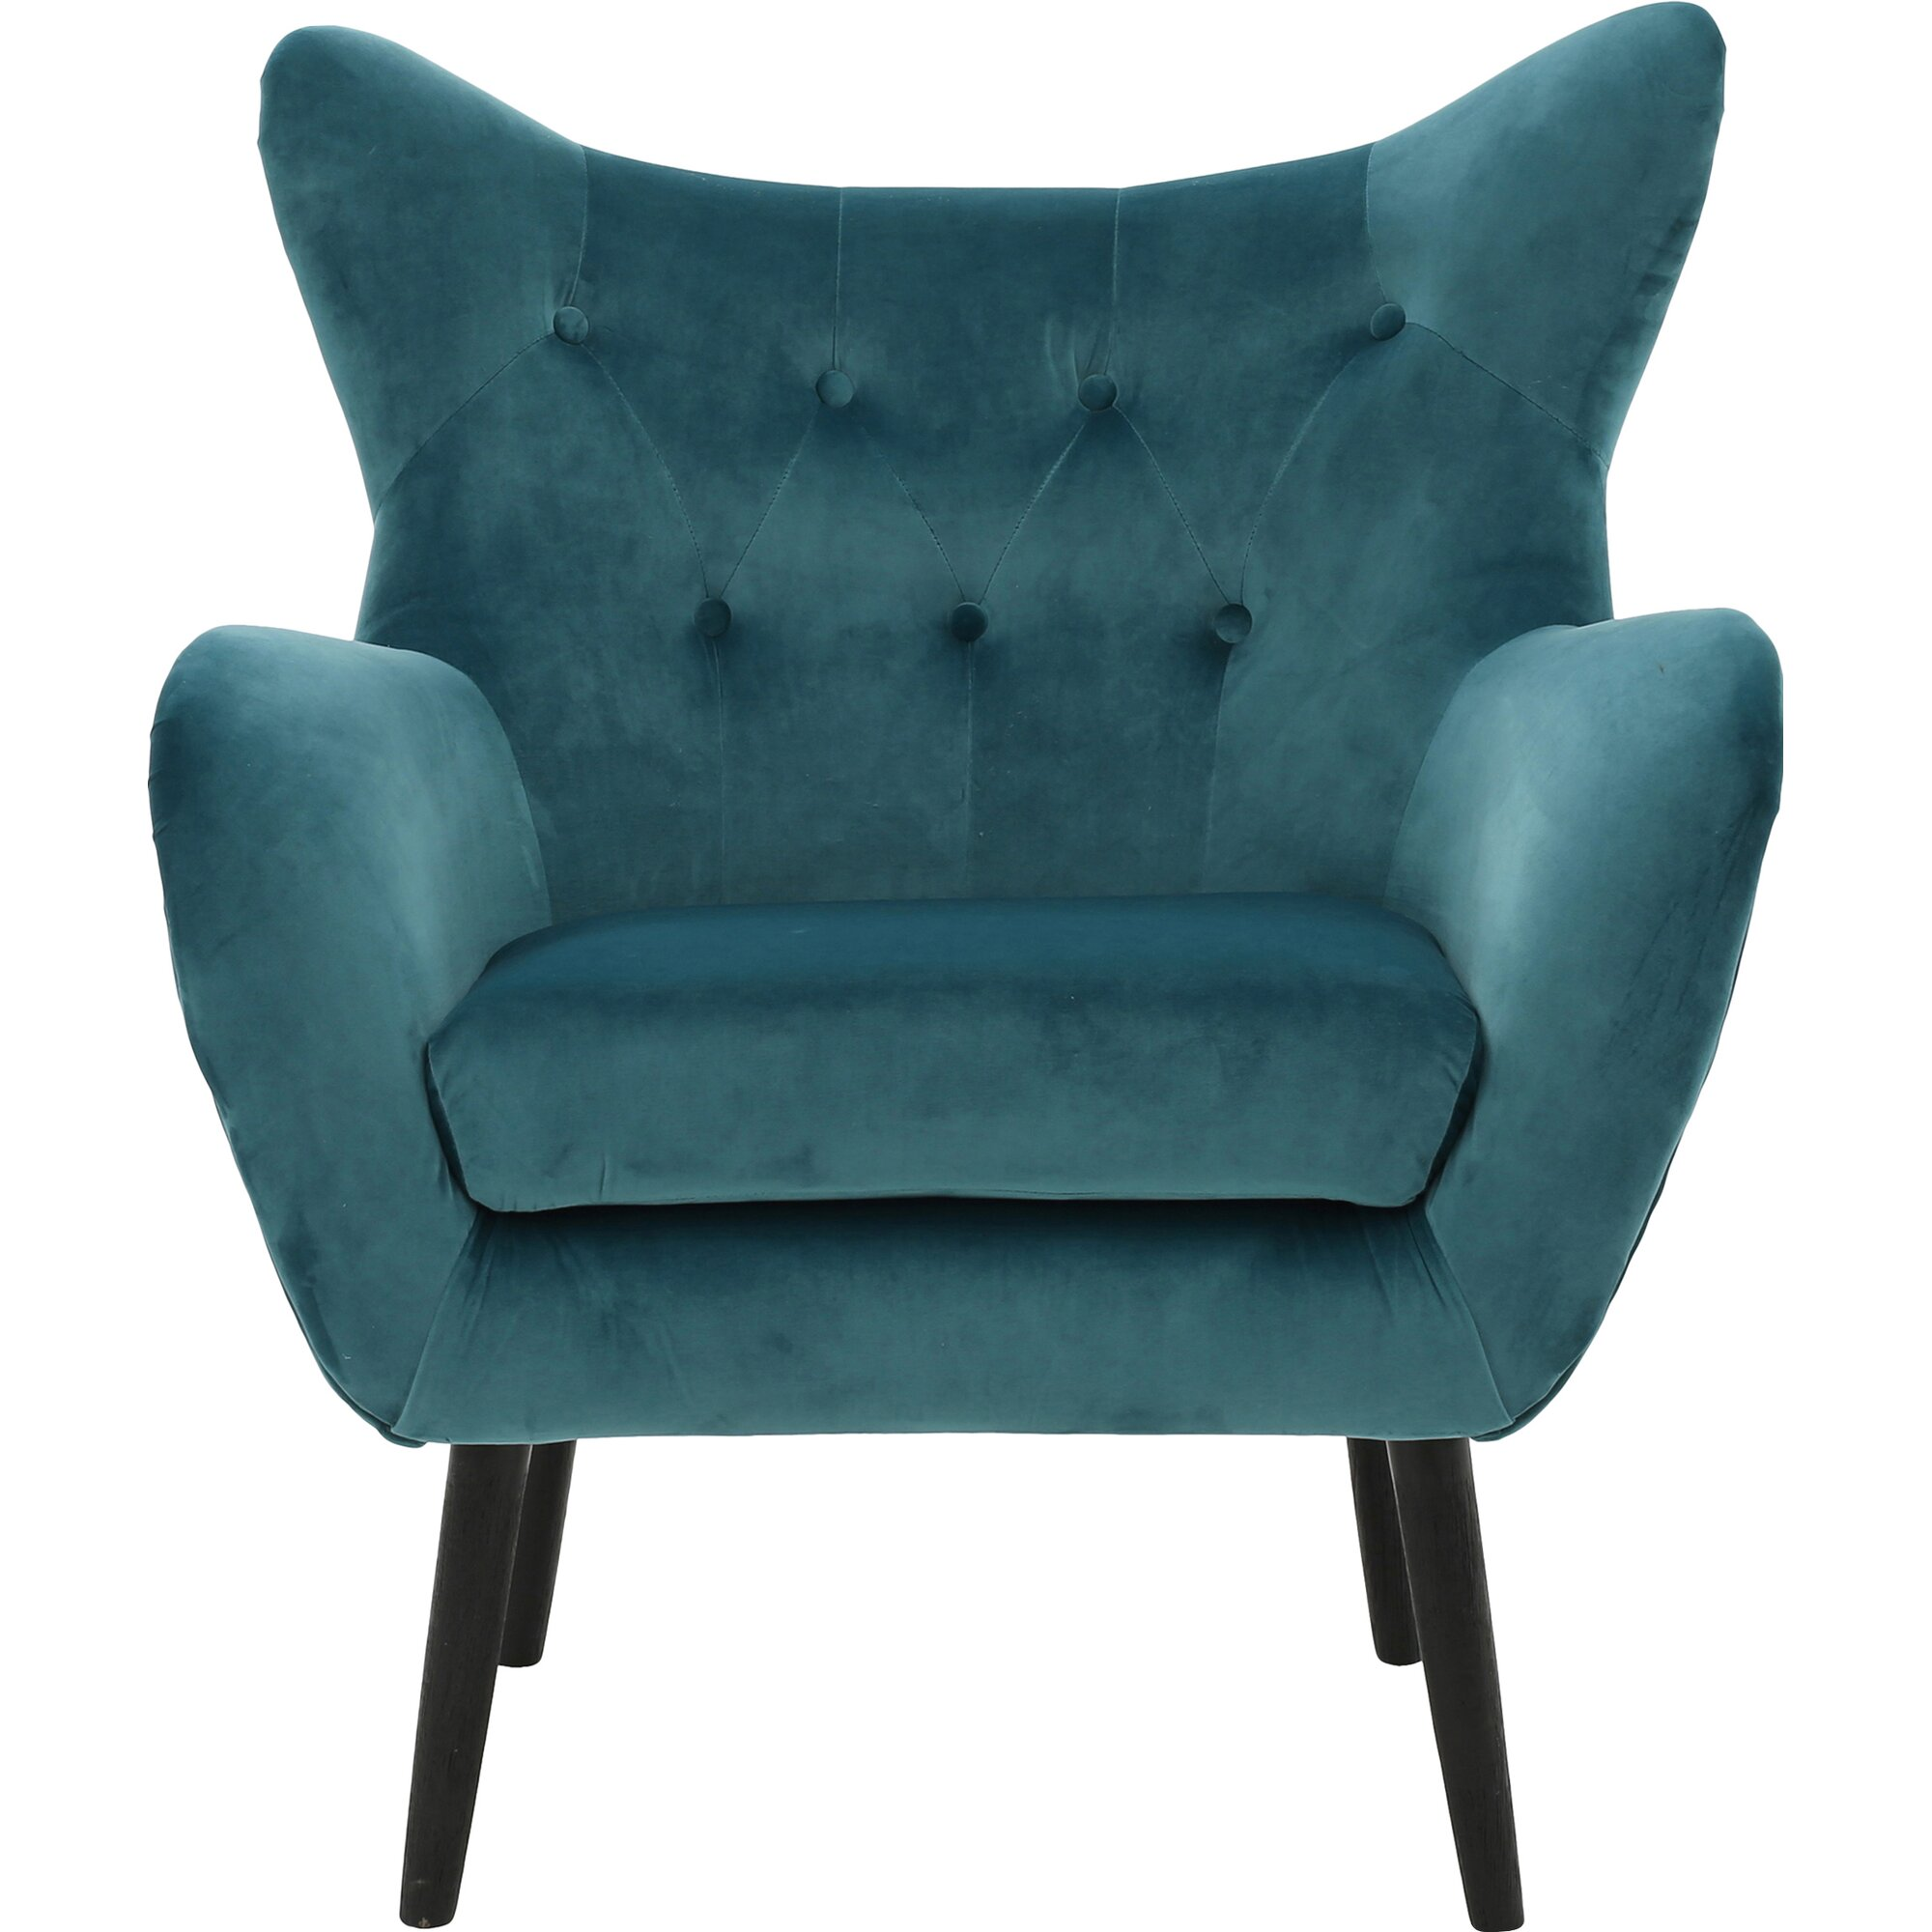 Teal wingback chair - Bouck Wingback Chair